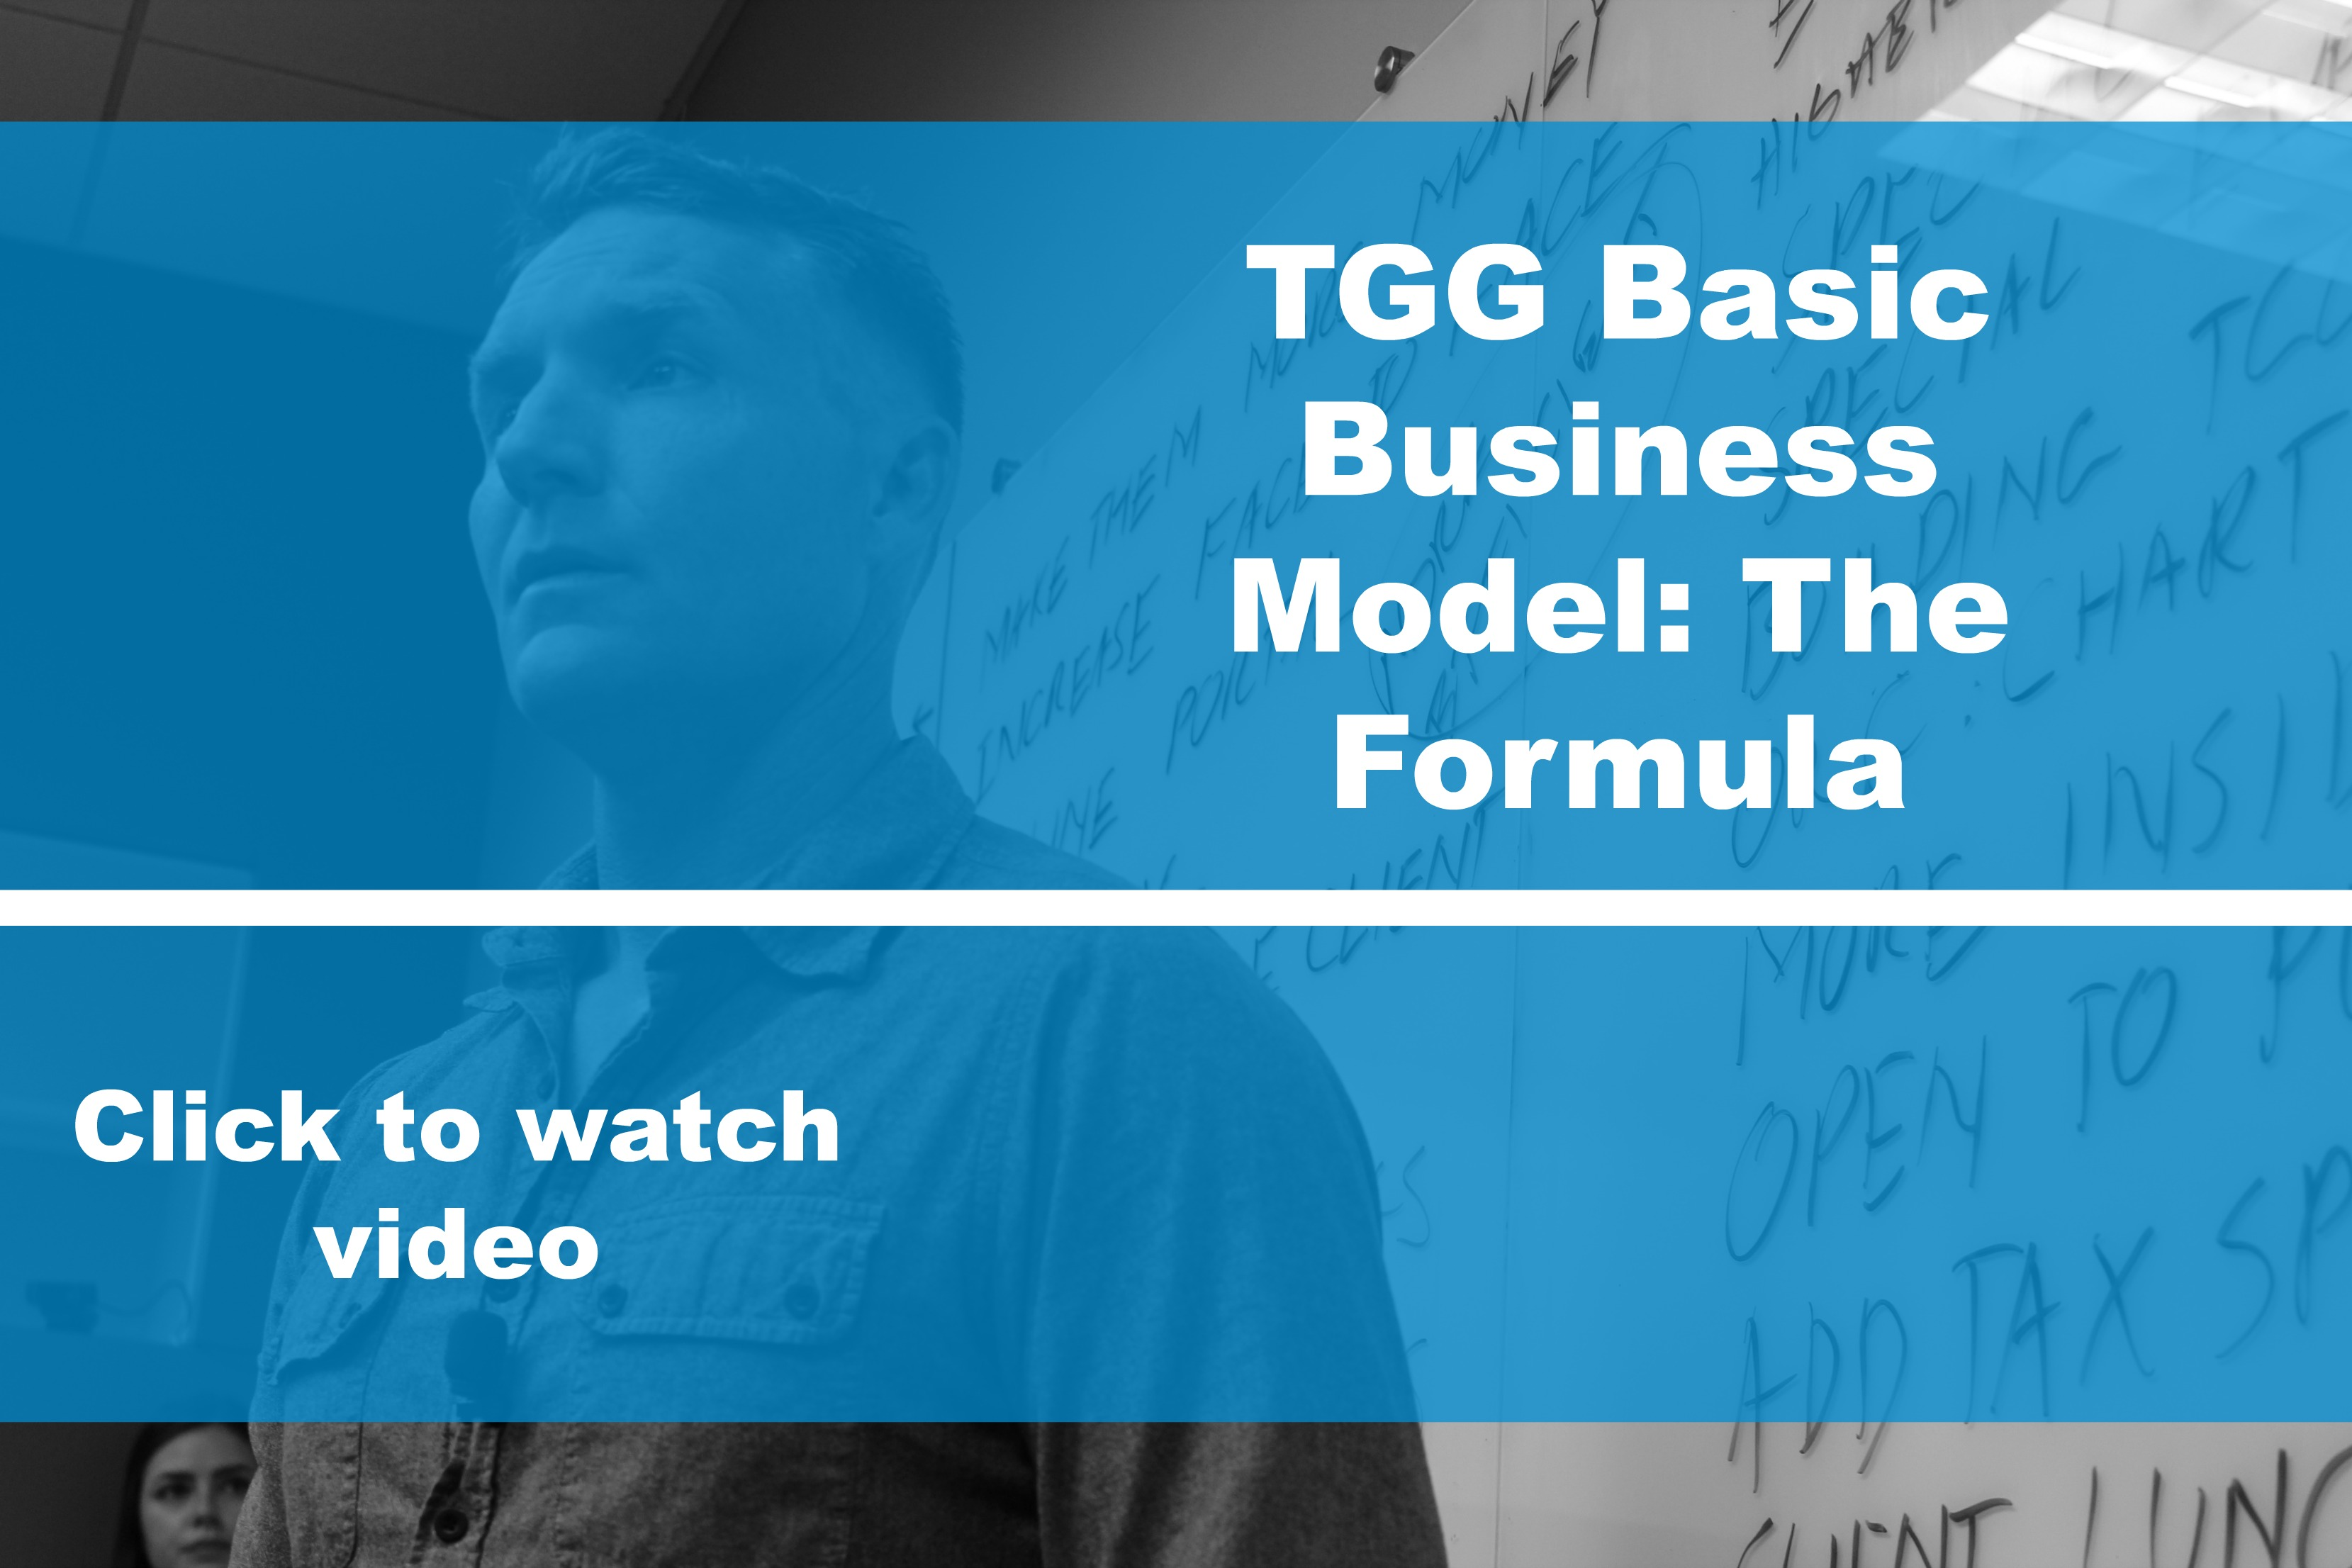 TGG Basic Business Model- The Formula